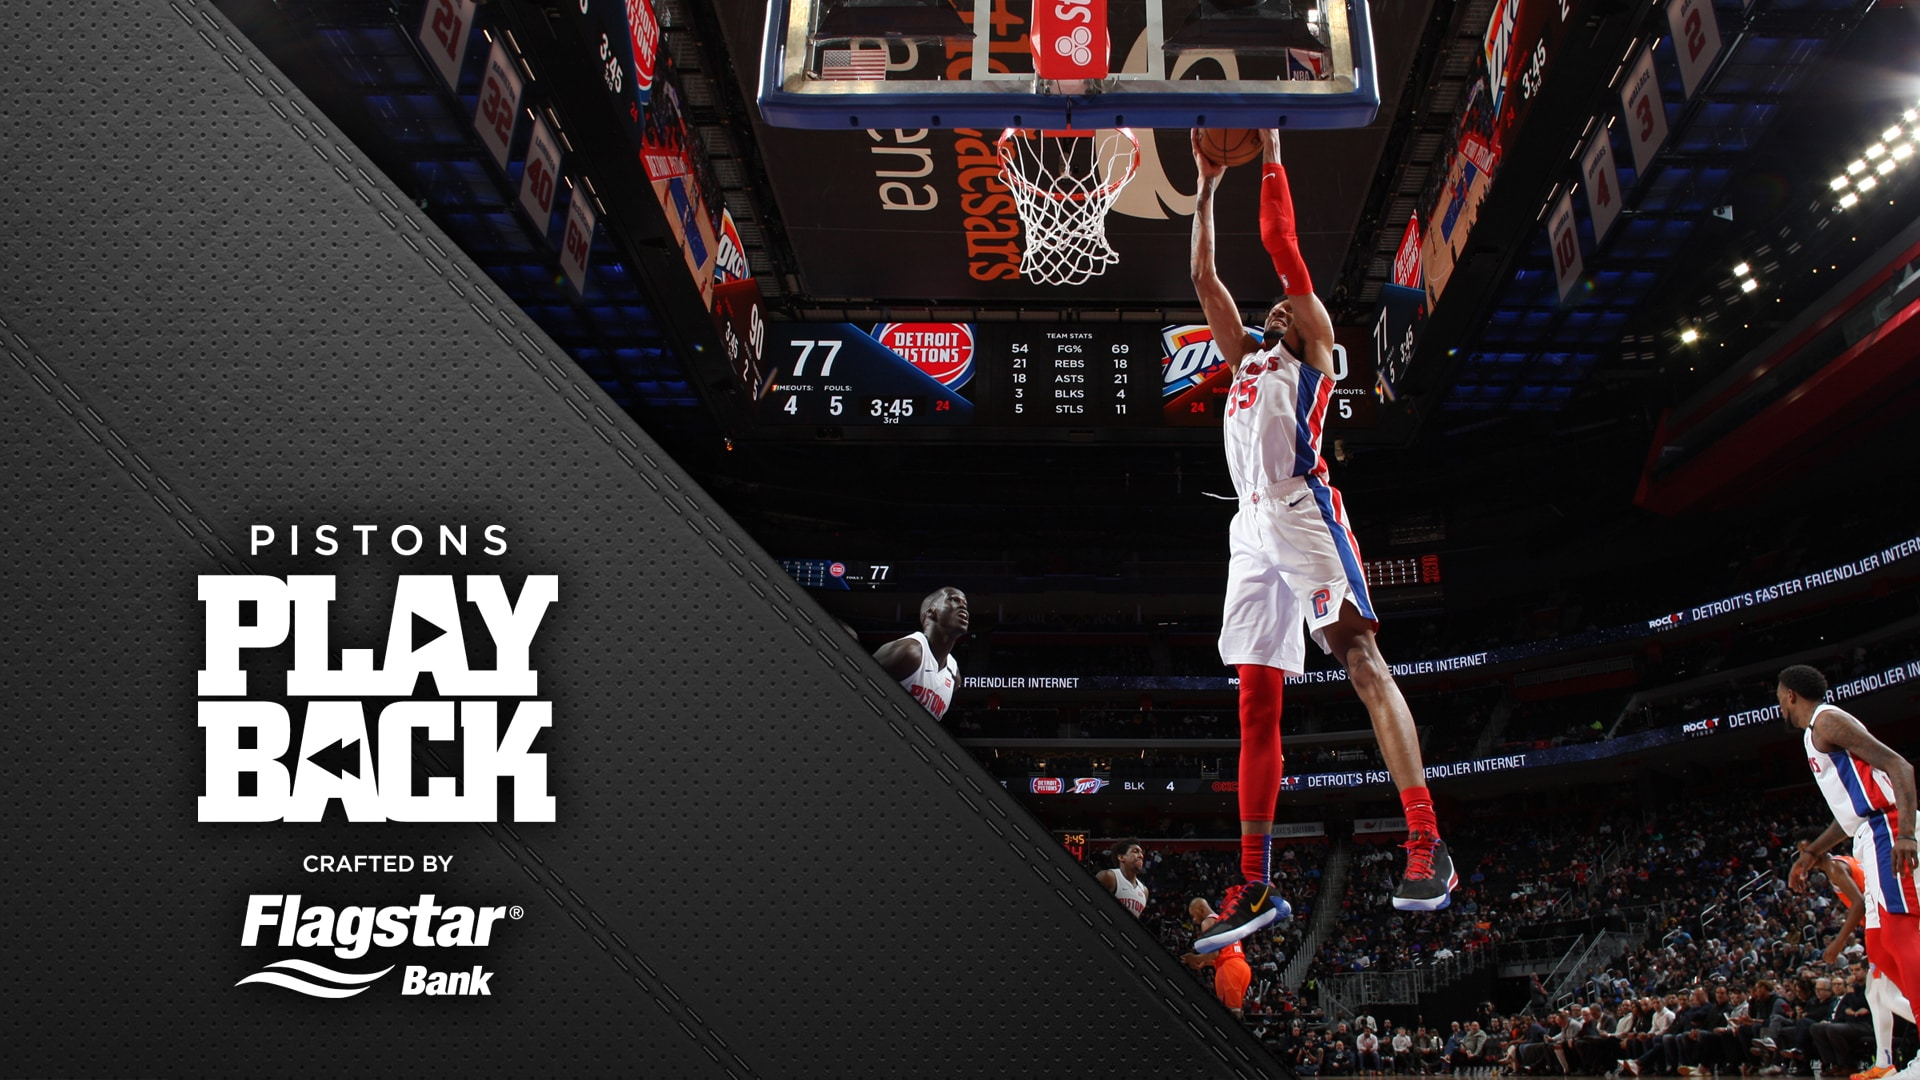 Pistons Playback, crafted by Flagstar: Pistons vs Thunder